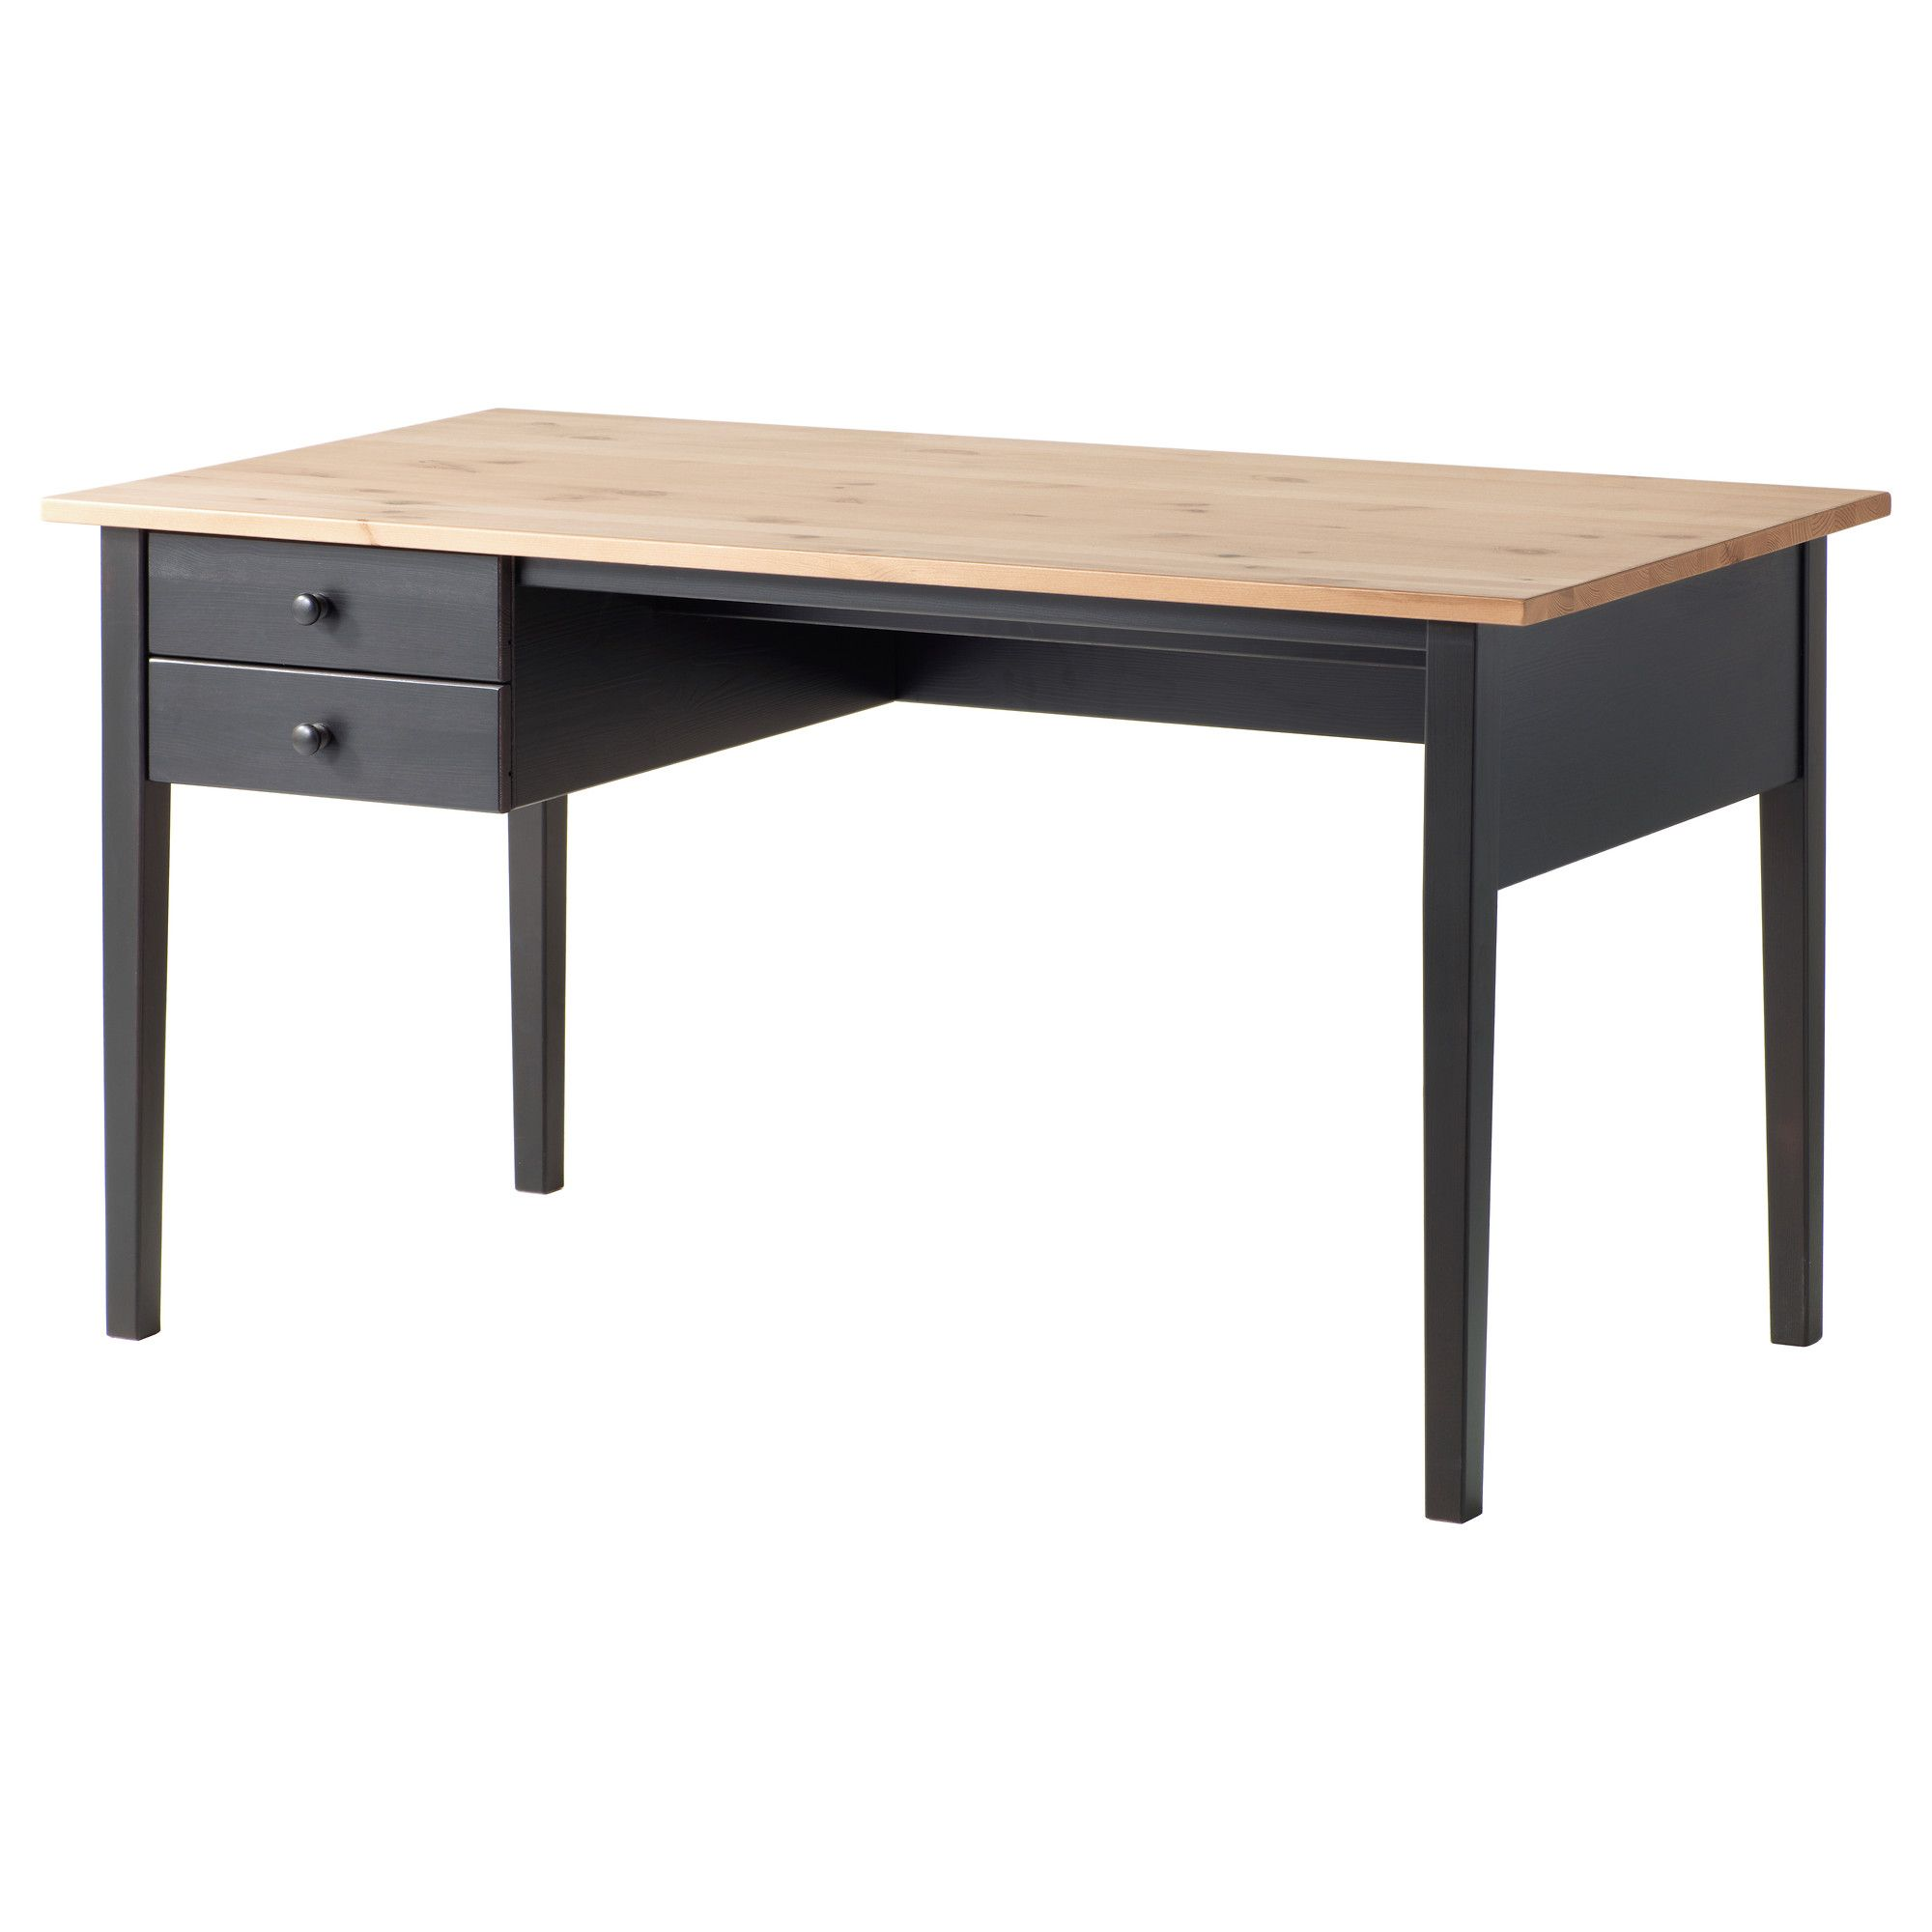 "ARKELSTORP Desk IKEAProduct dimensions Depth 27 1 2 "" Height under furniture"